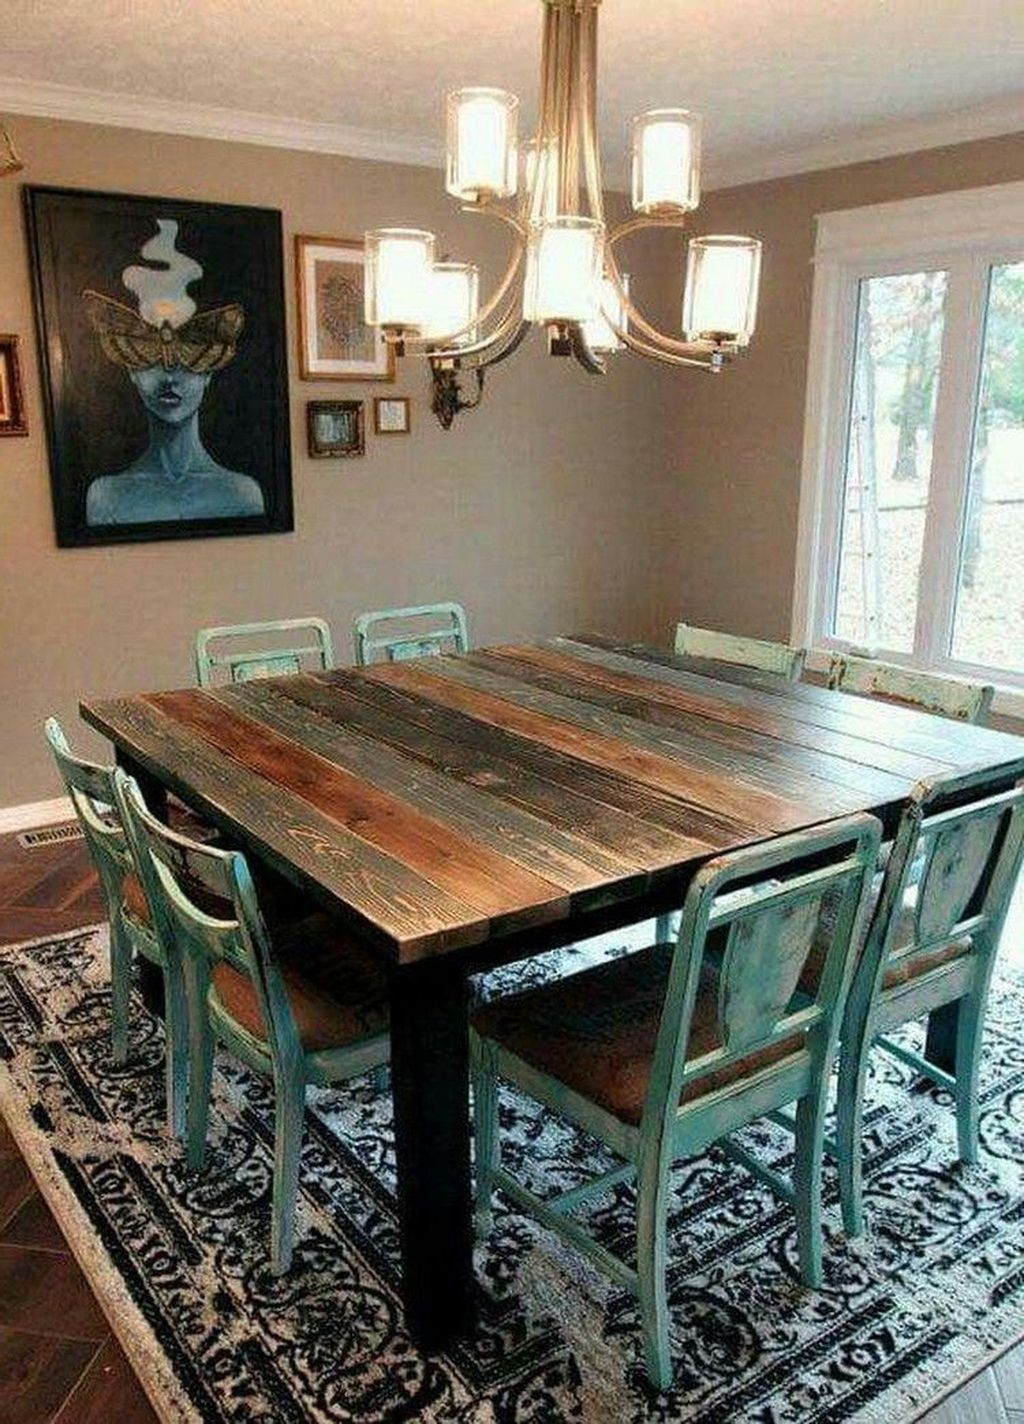 40 Lovely Western Style Kitchen Decorations Page 33 Of 42 Best Living Room In 2020 Living Room Decor Rustic Farmhouse Dining Room Table Western Living Rooms #western #themed #living #room